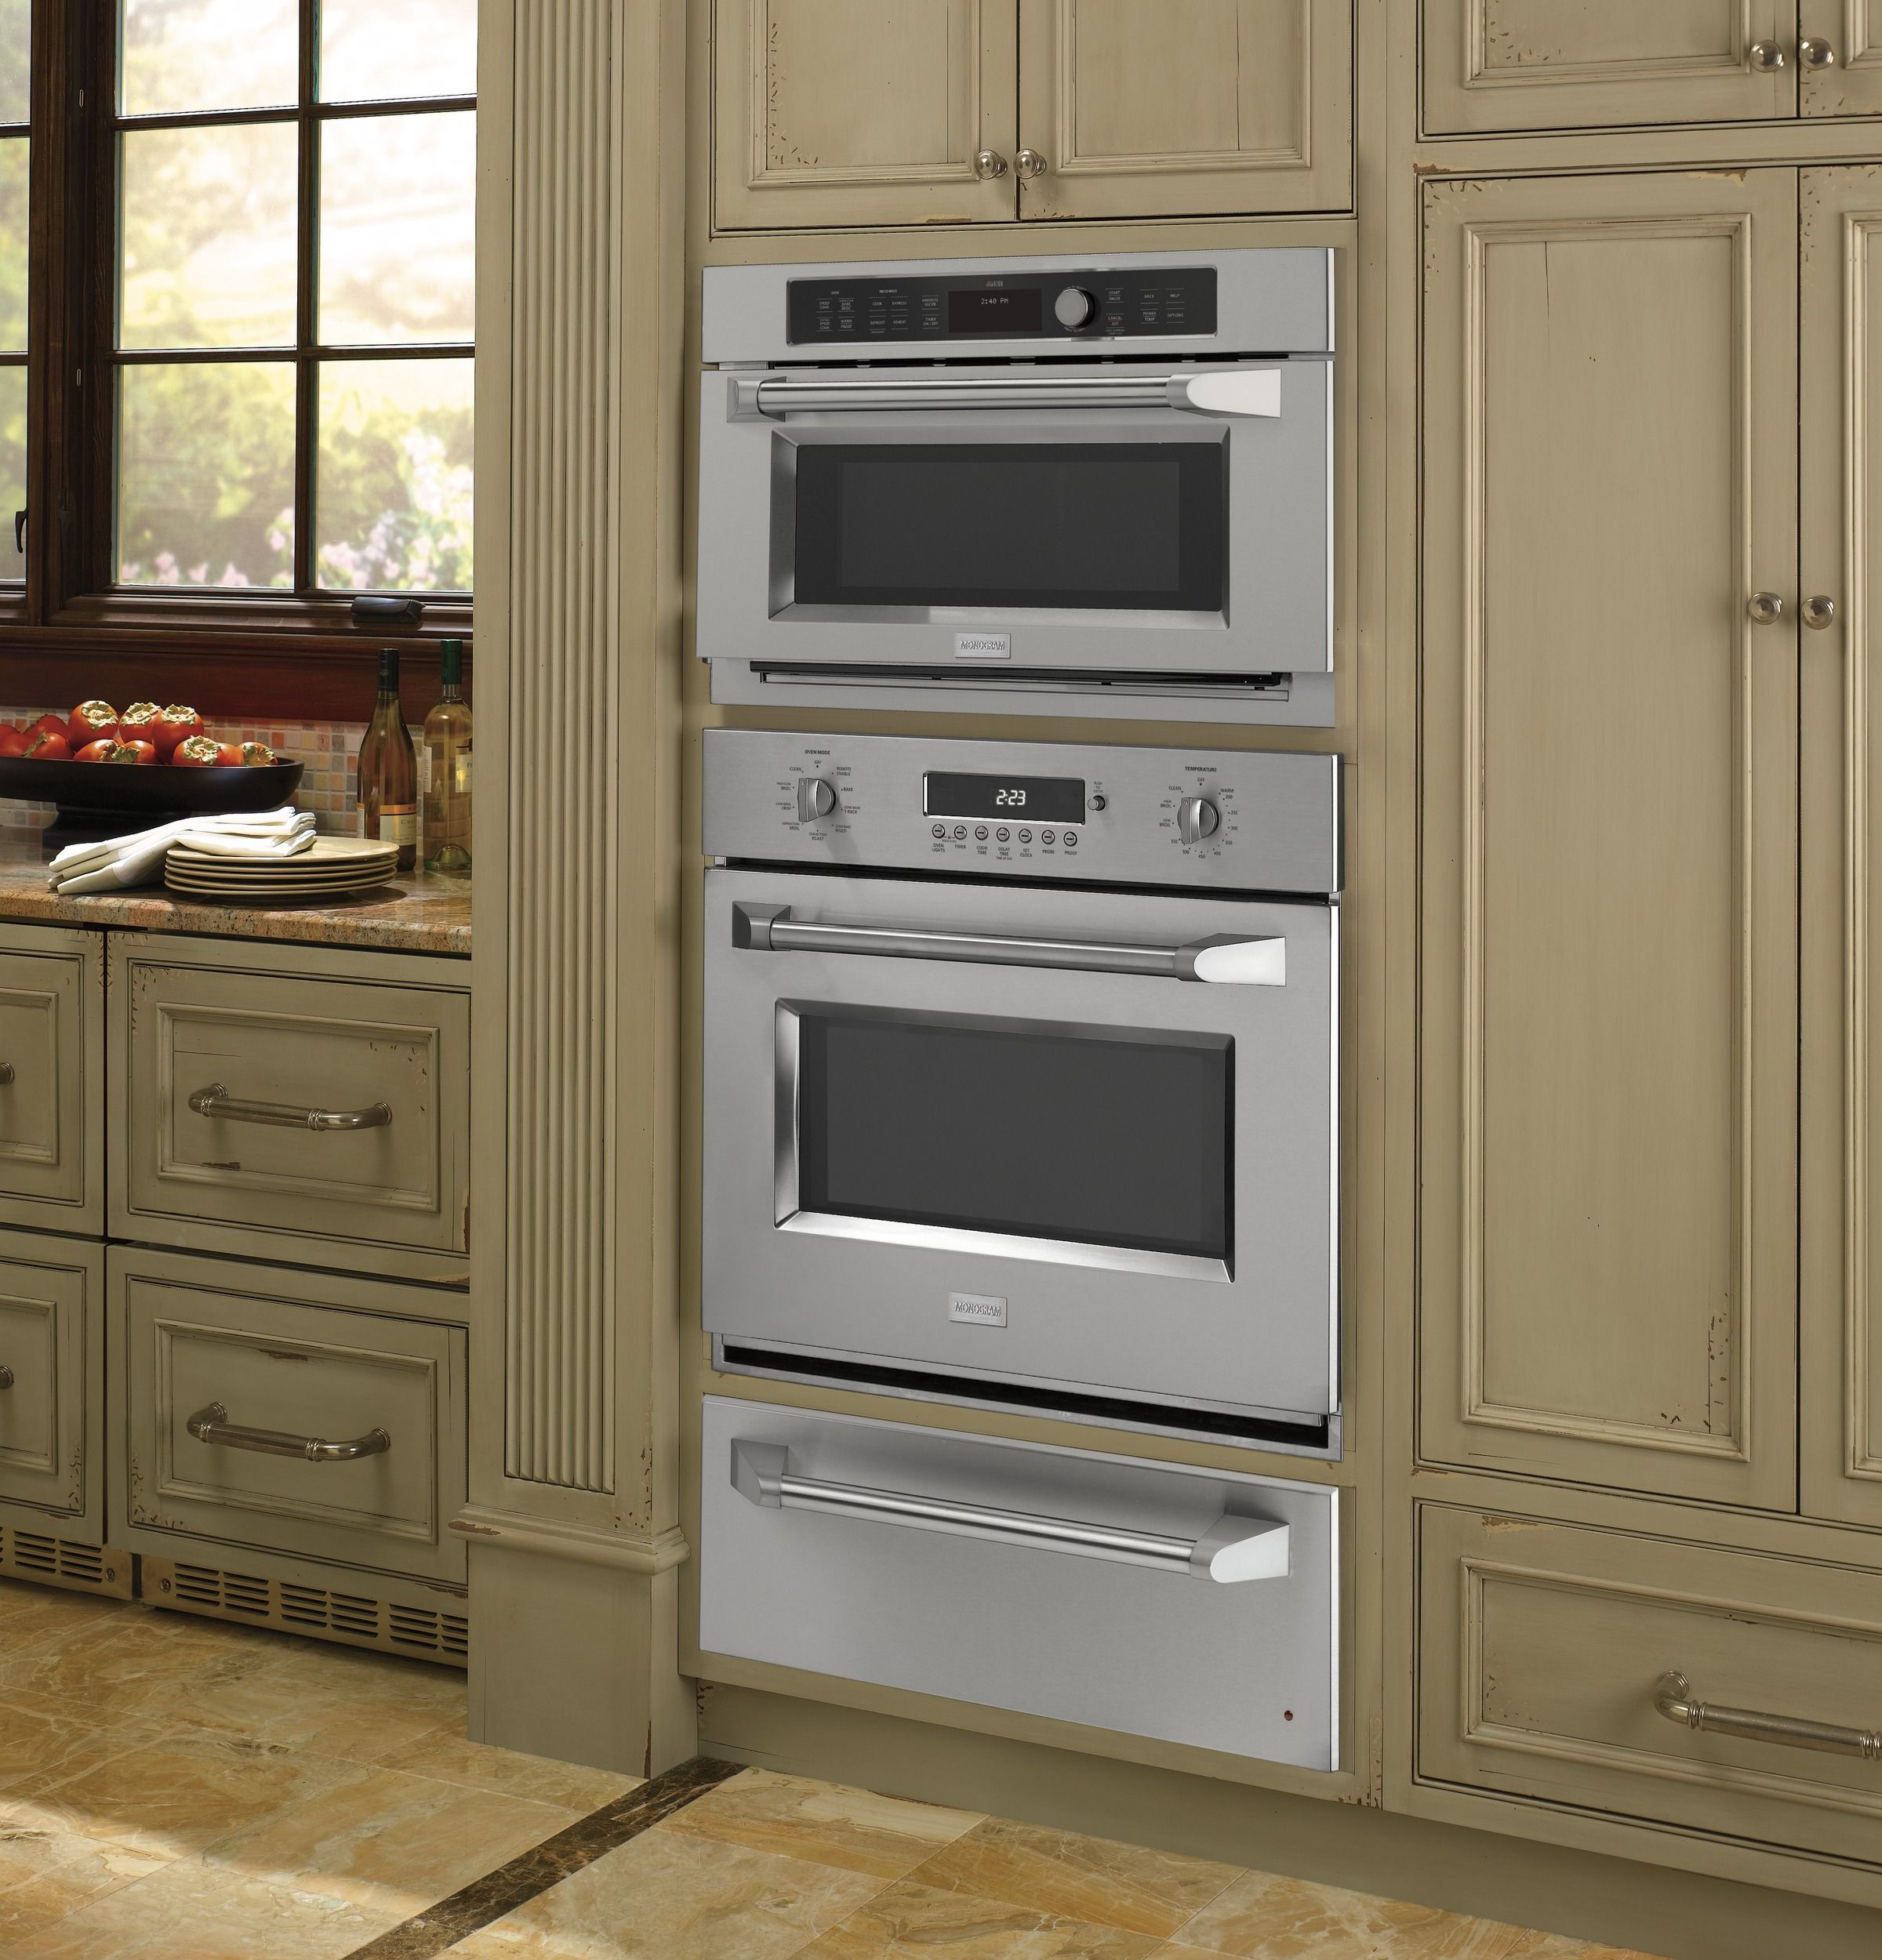 Single Oven With Warming Drawer